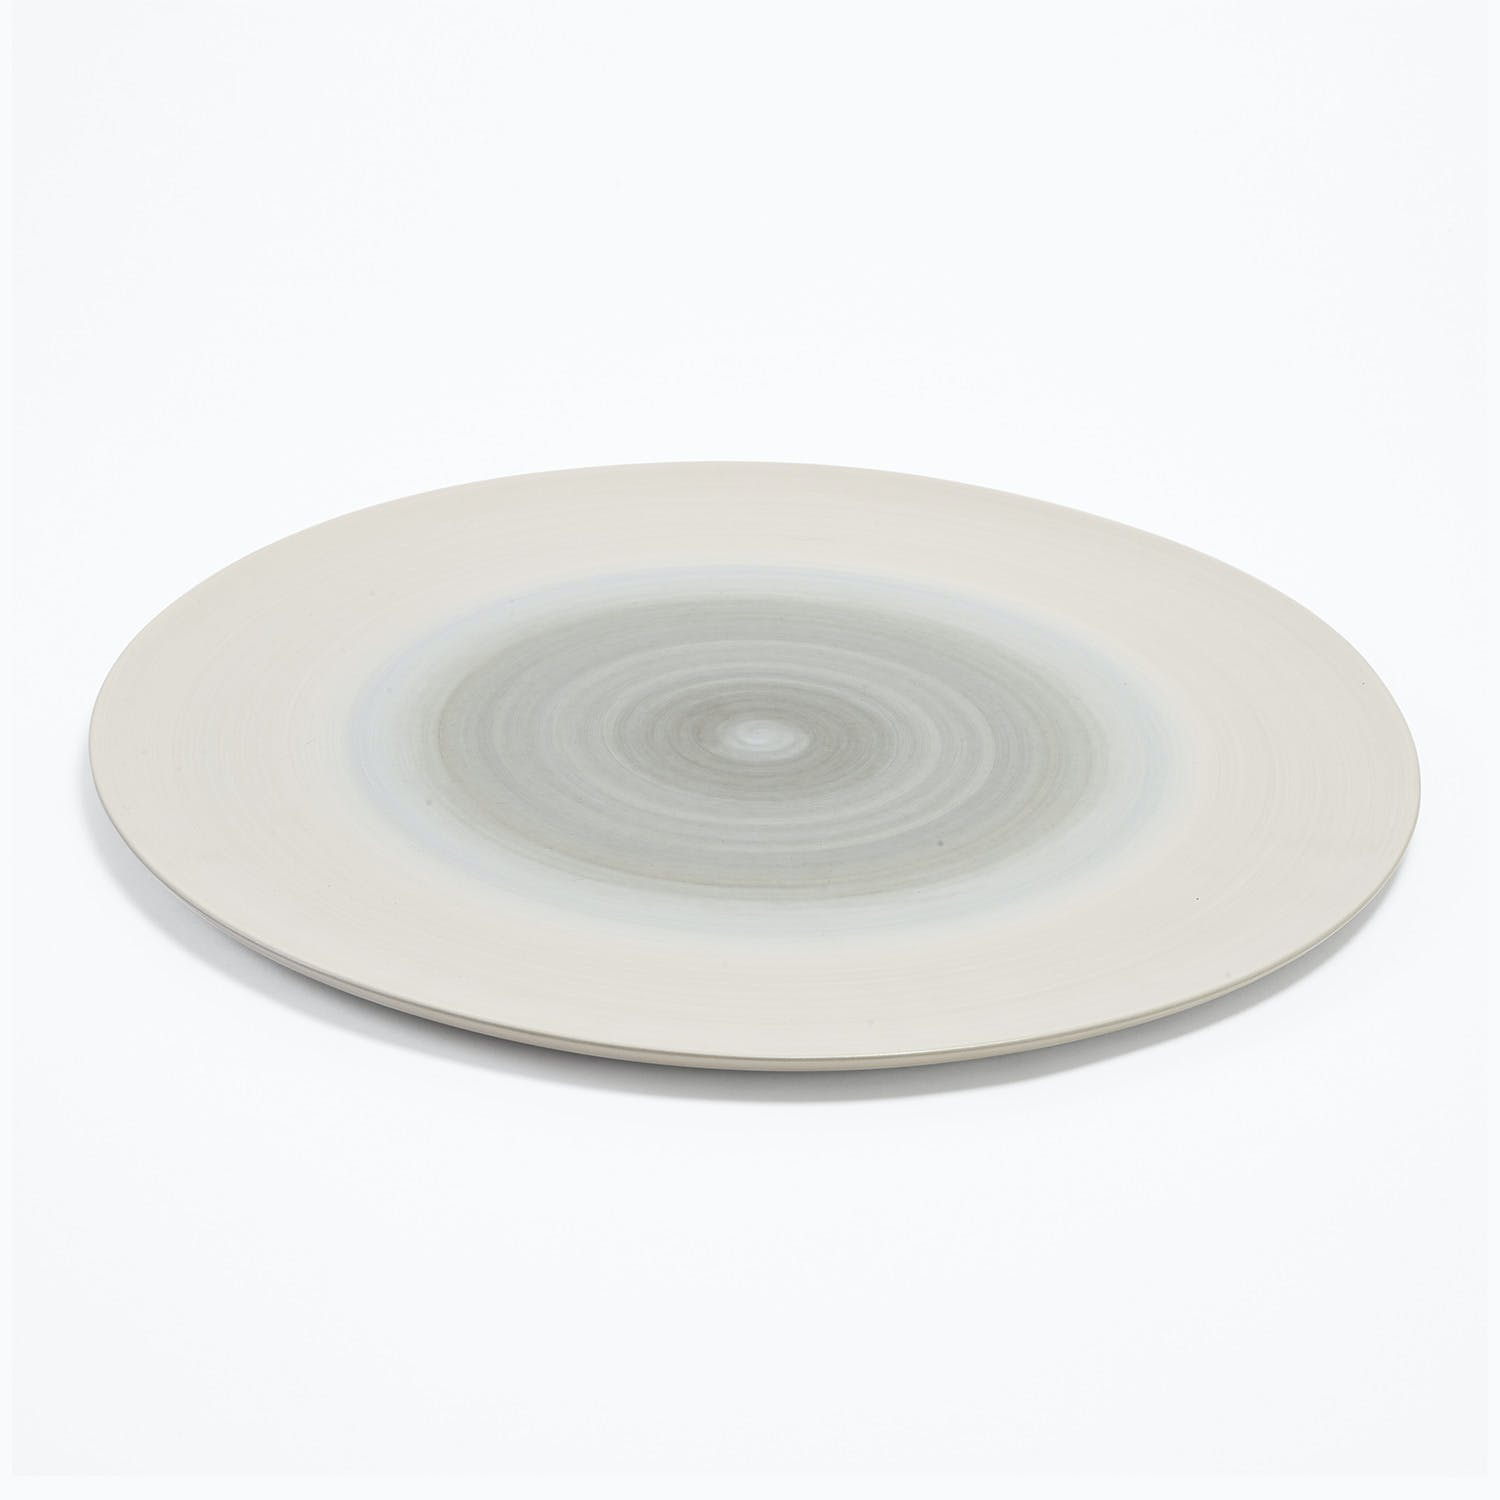 Product Image - Maxi Plate Round Peel